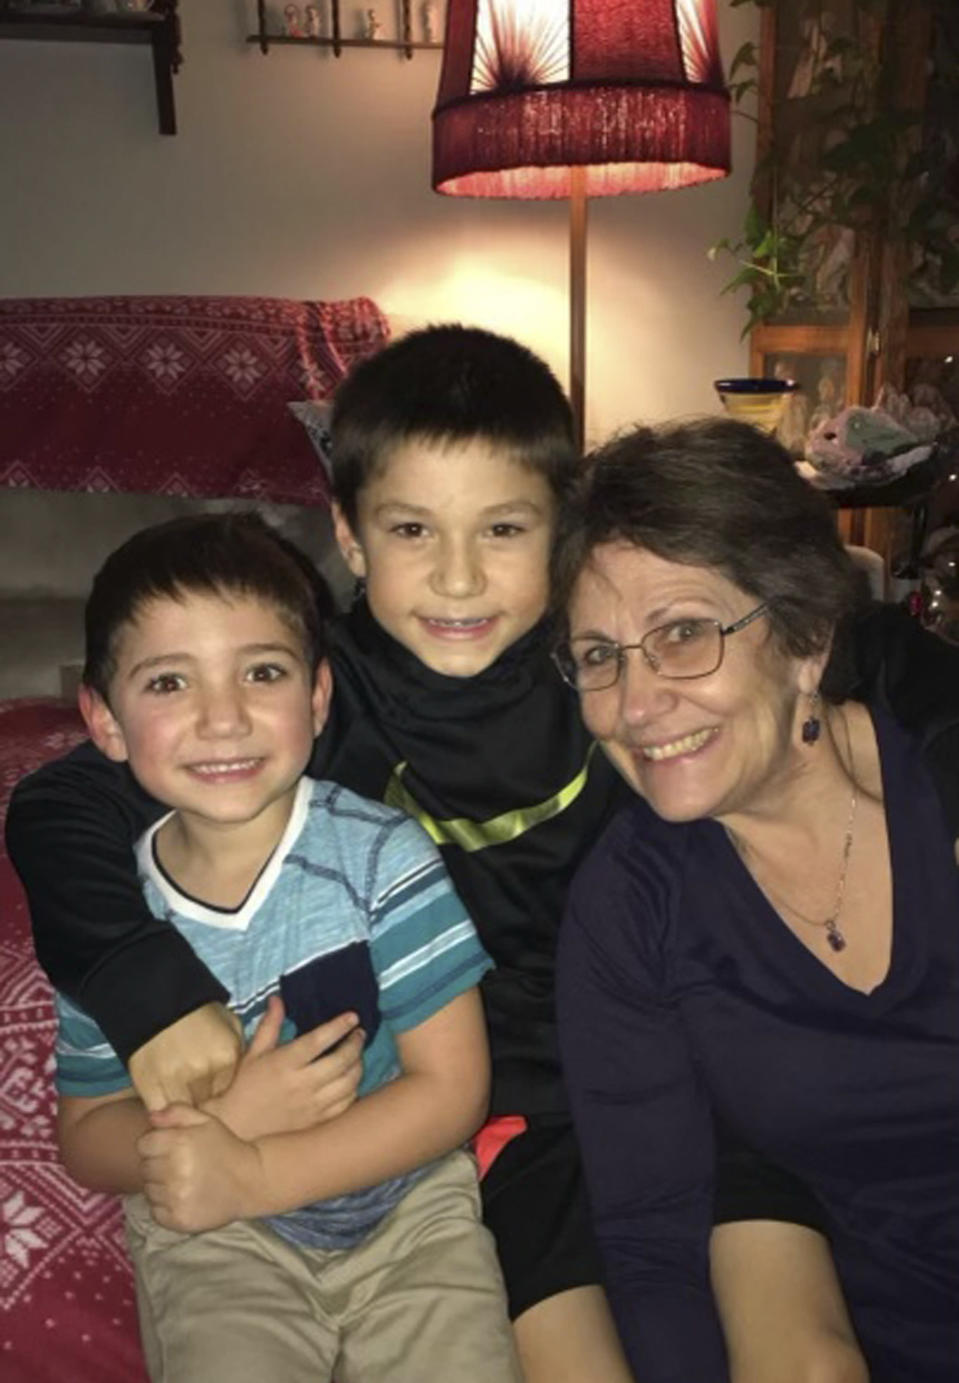 In this December 2019 photo, provided by Barbara Trout, she poses with grandsons Grayson, center, and Garrett, left, in Keizer, Ore. Trout, who suffers from asthma, was taken to ambulance to a hospital twice in September following exposure to smoke from wildfires that reached hazardous levels. (Barbara Trout via AP)